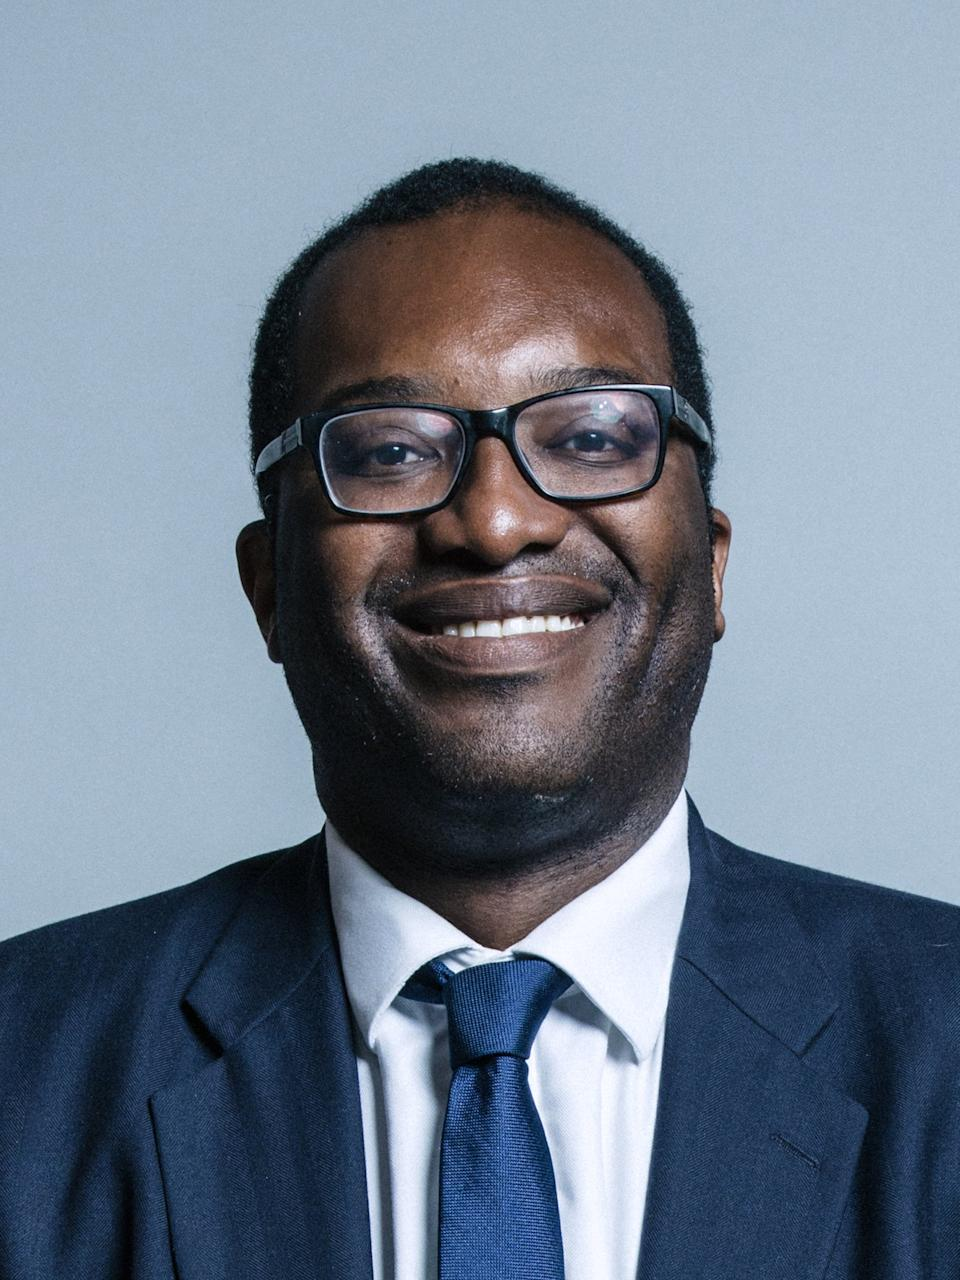 Kwasi Kwarteng was recently appointed business secretary, relieving Alok Sharma of the role and allowing him to focus on his ole as president of the UN COP26 climate conference in NovemberUK Parliament